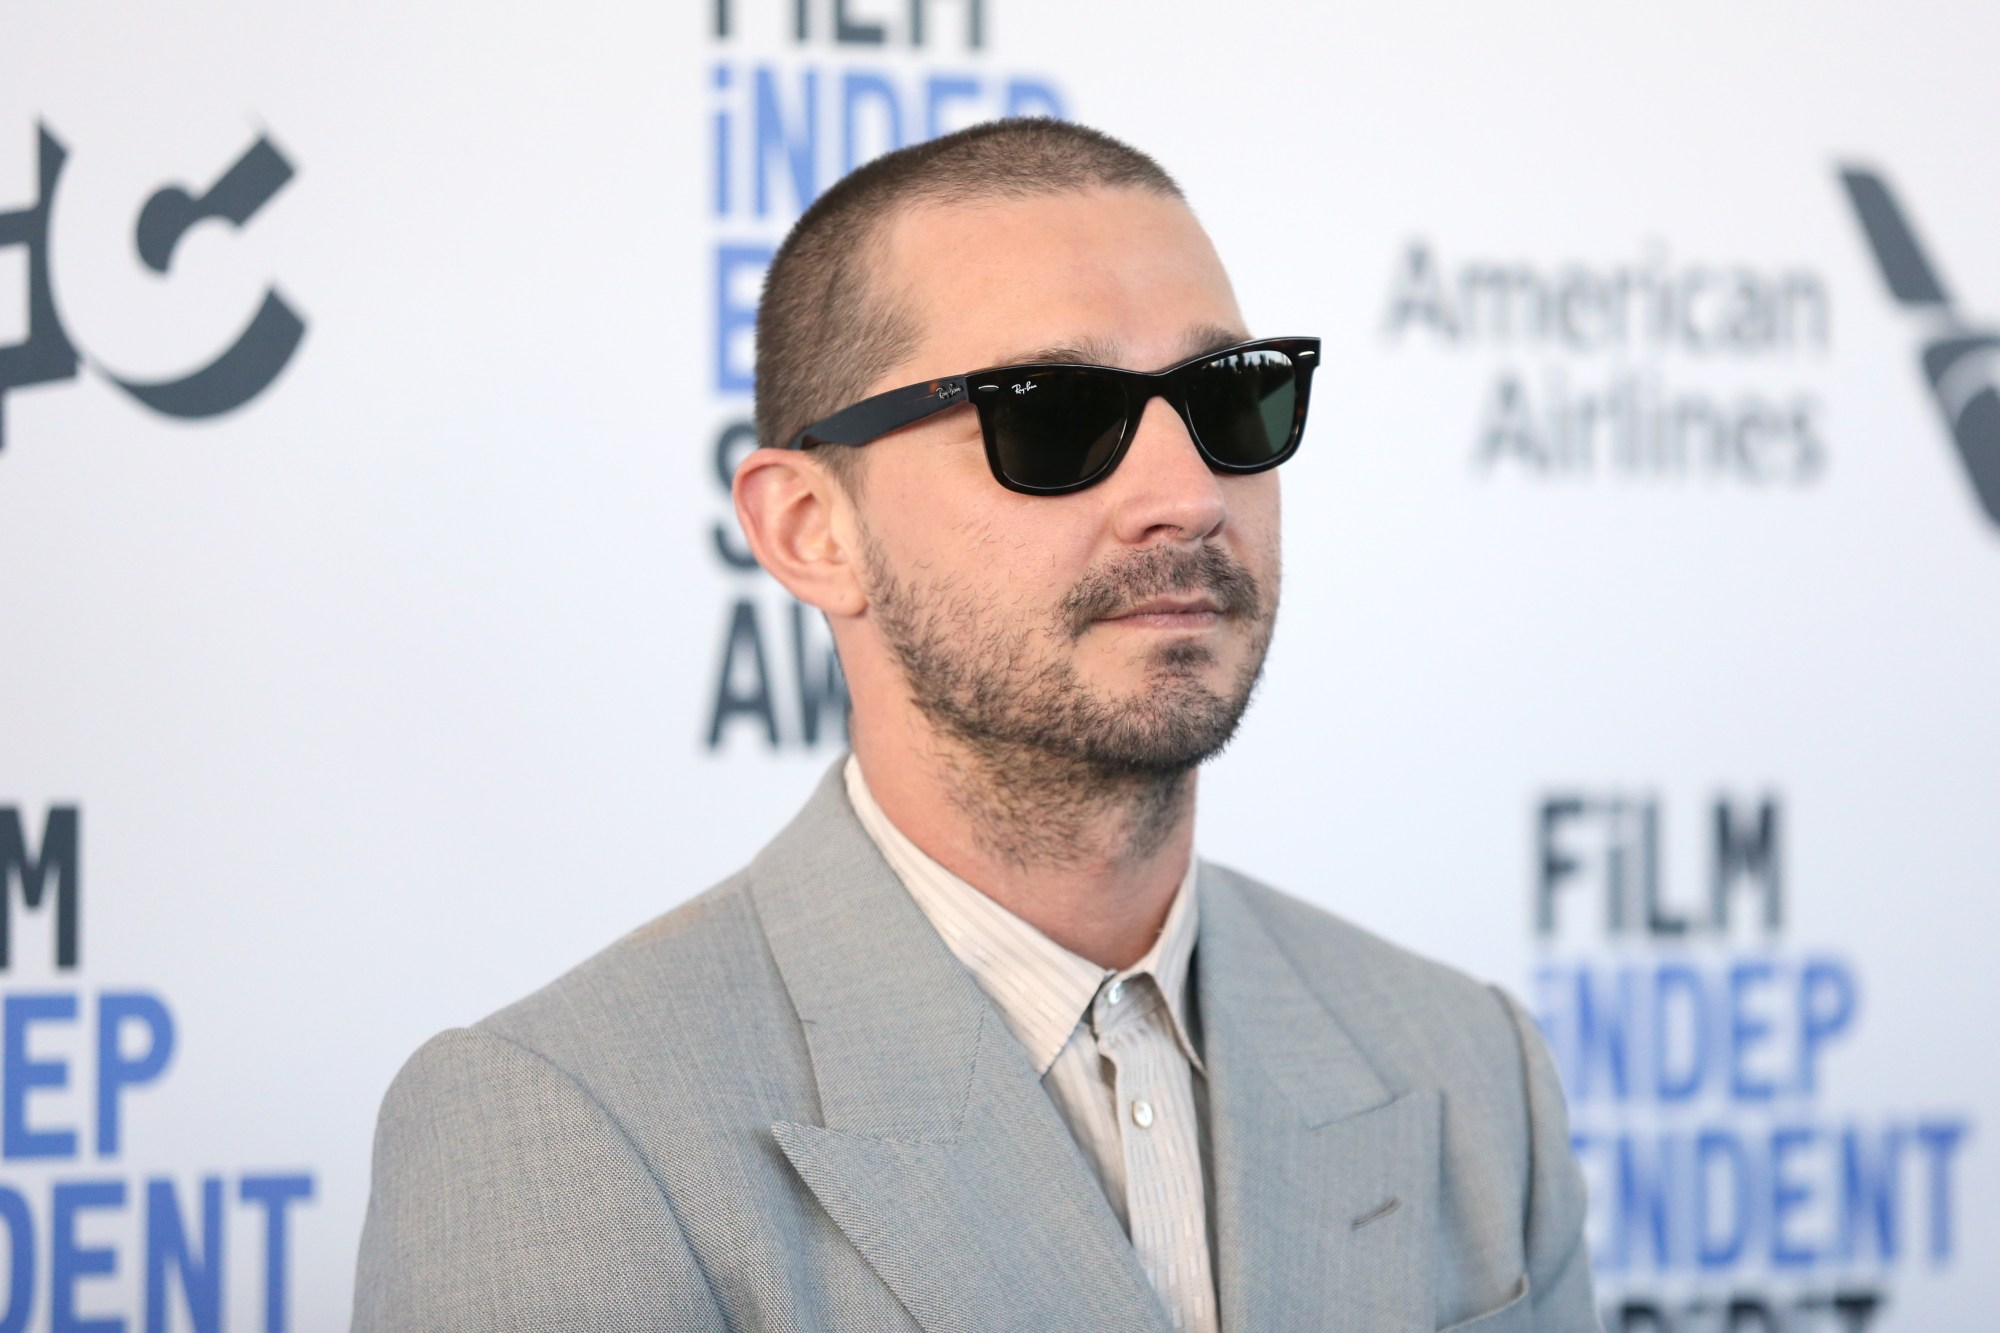 Shia LaBeouf attends the 2020 Film Independent Spirit Awards on Feb. 8, 2020, in Santa Monica, California. (Phillip Faraone/Getty Images)